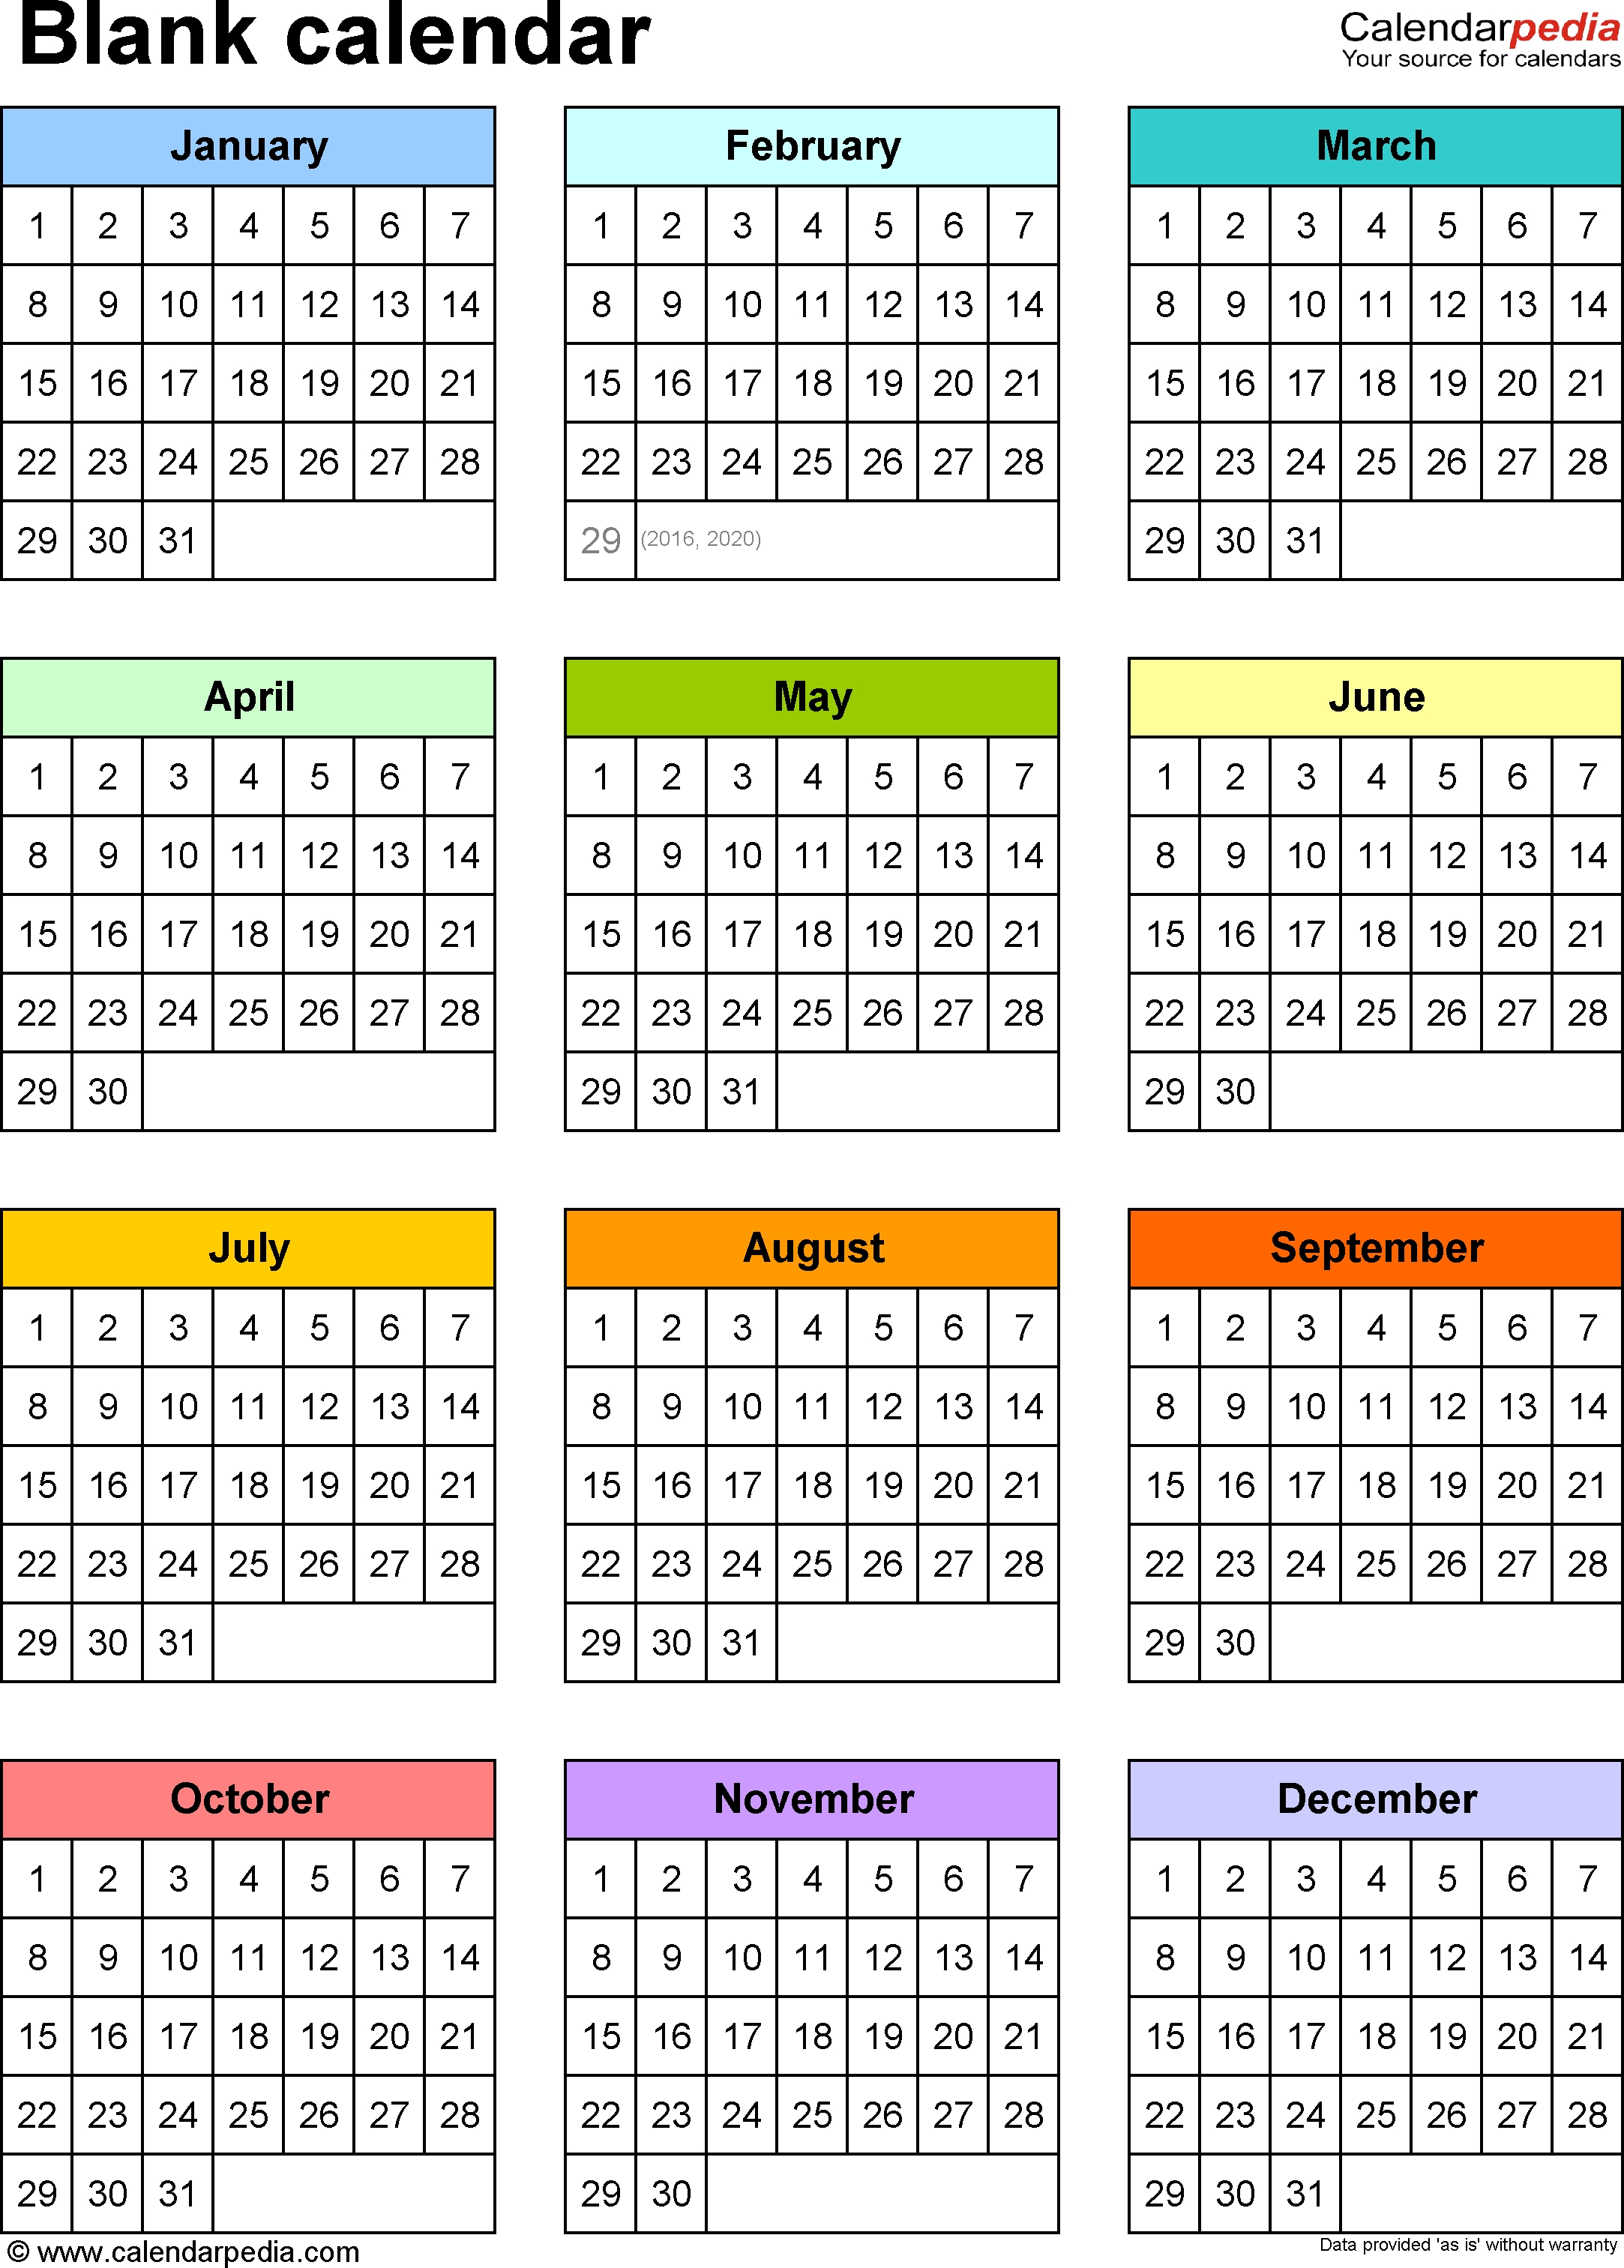 Blank Calendar - 9 Free Printable Microsoft Word Templates_Blank Calendar Year At A Glance